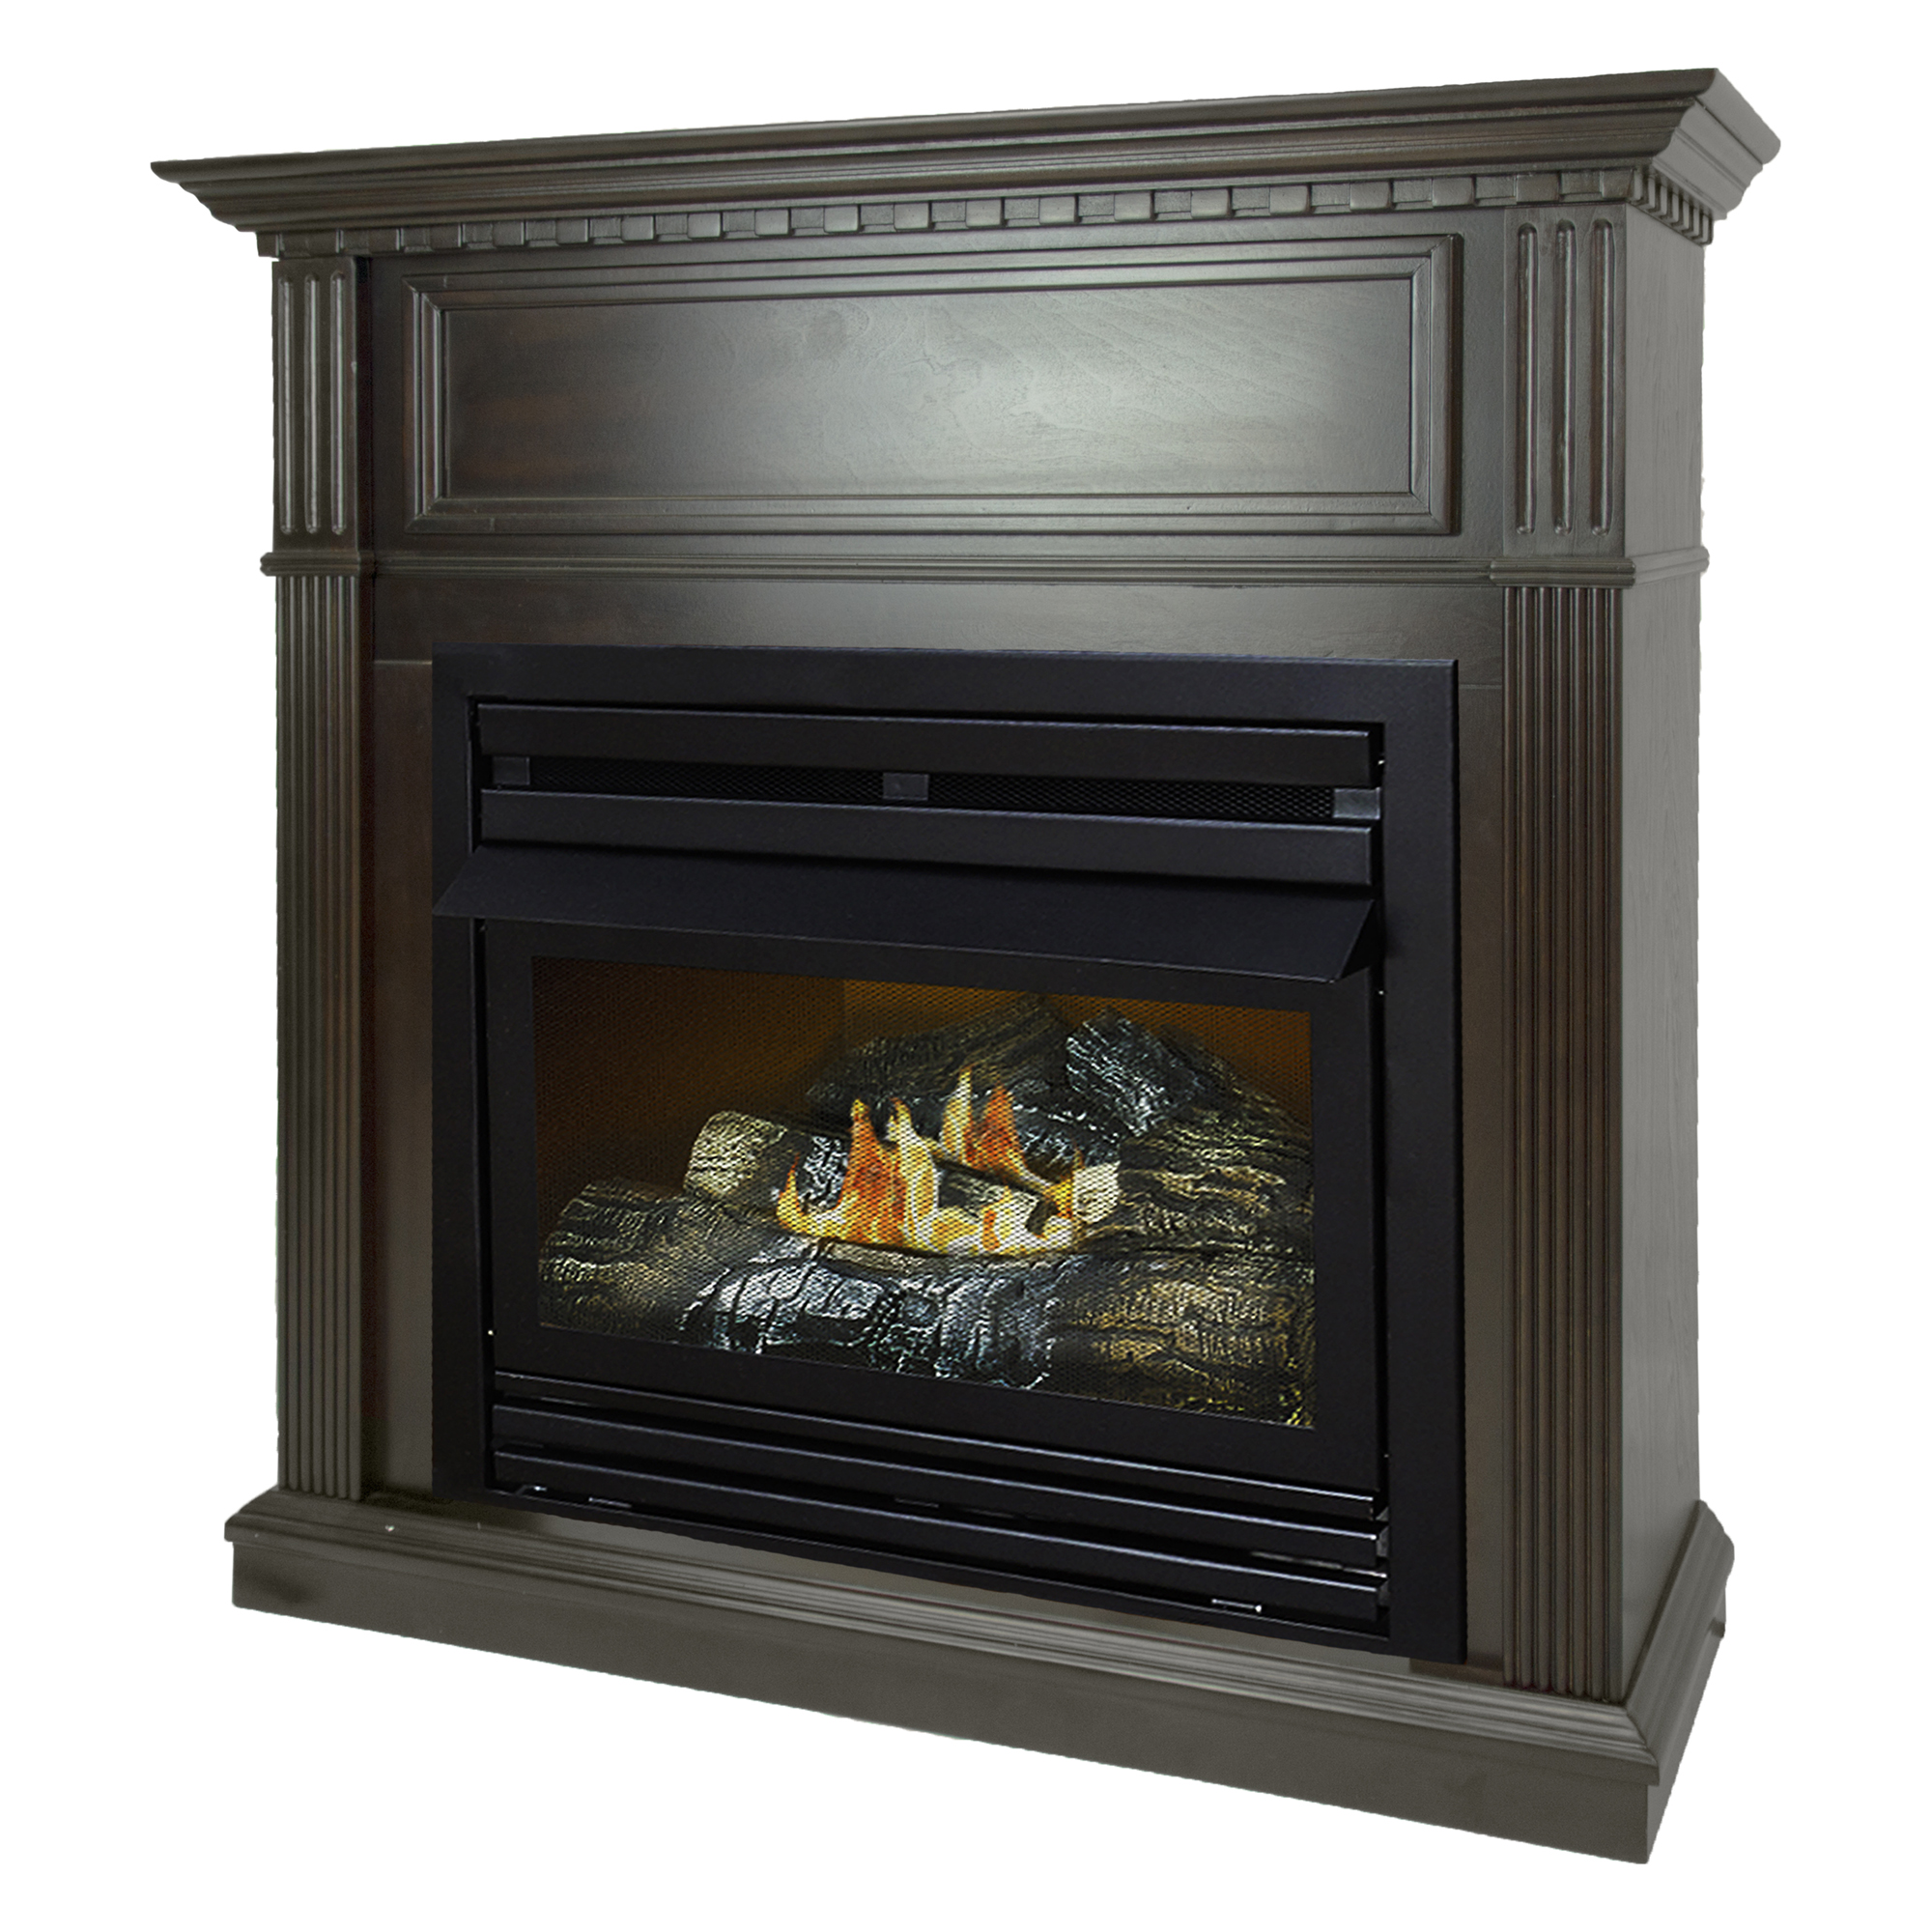 Pleasant Hearth 42 in. Natural Gas Intermediate Tobacco Vent Free Fireplace System 27,500 BTU